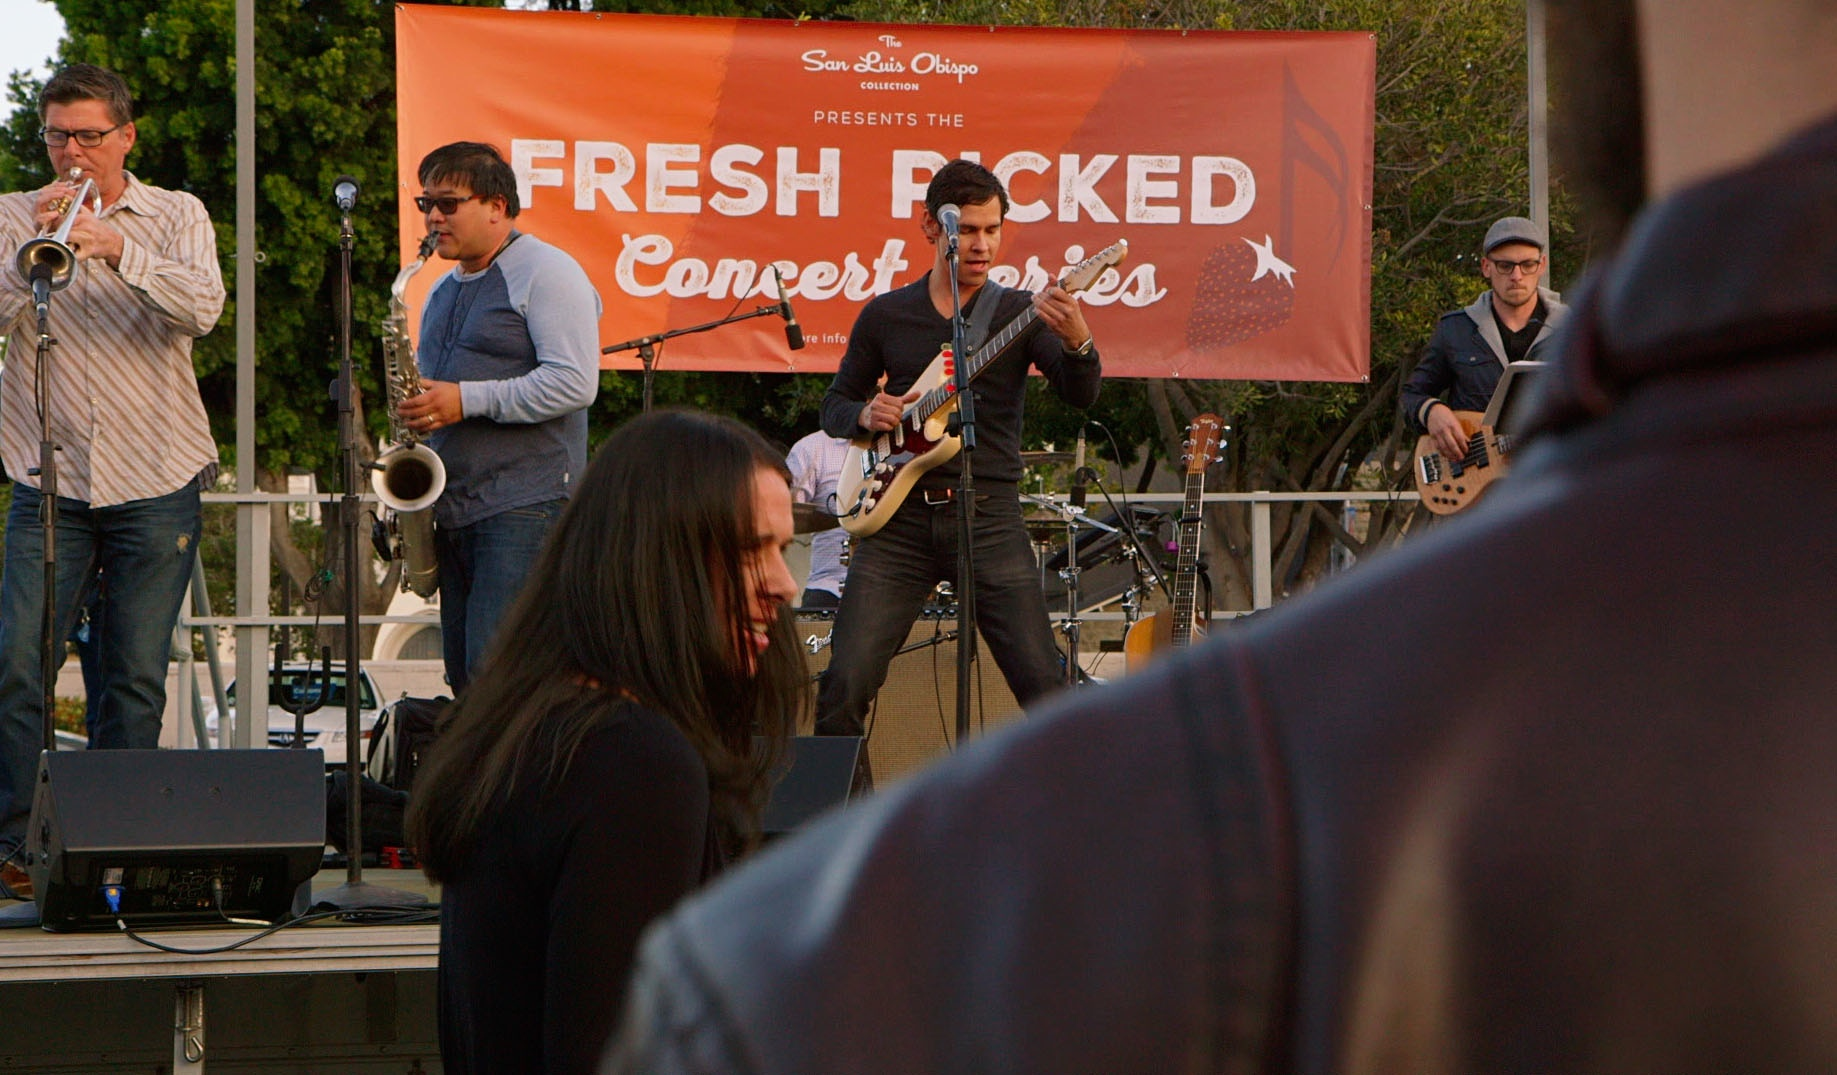 Band playing live music on stage at the Fresh Picked Concert Series